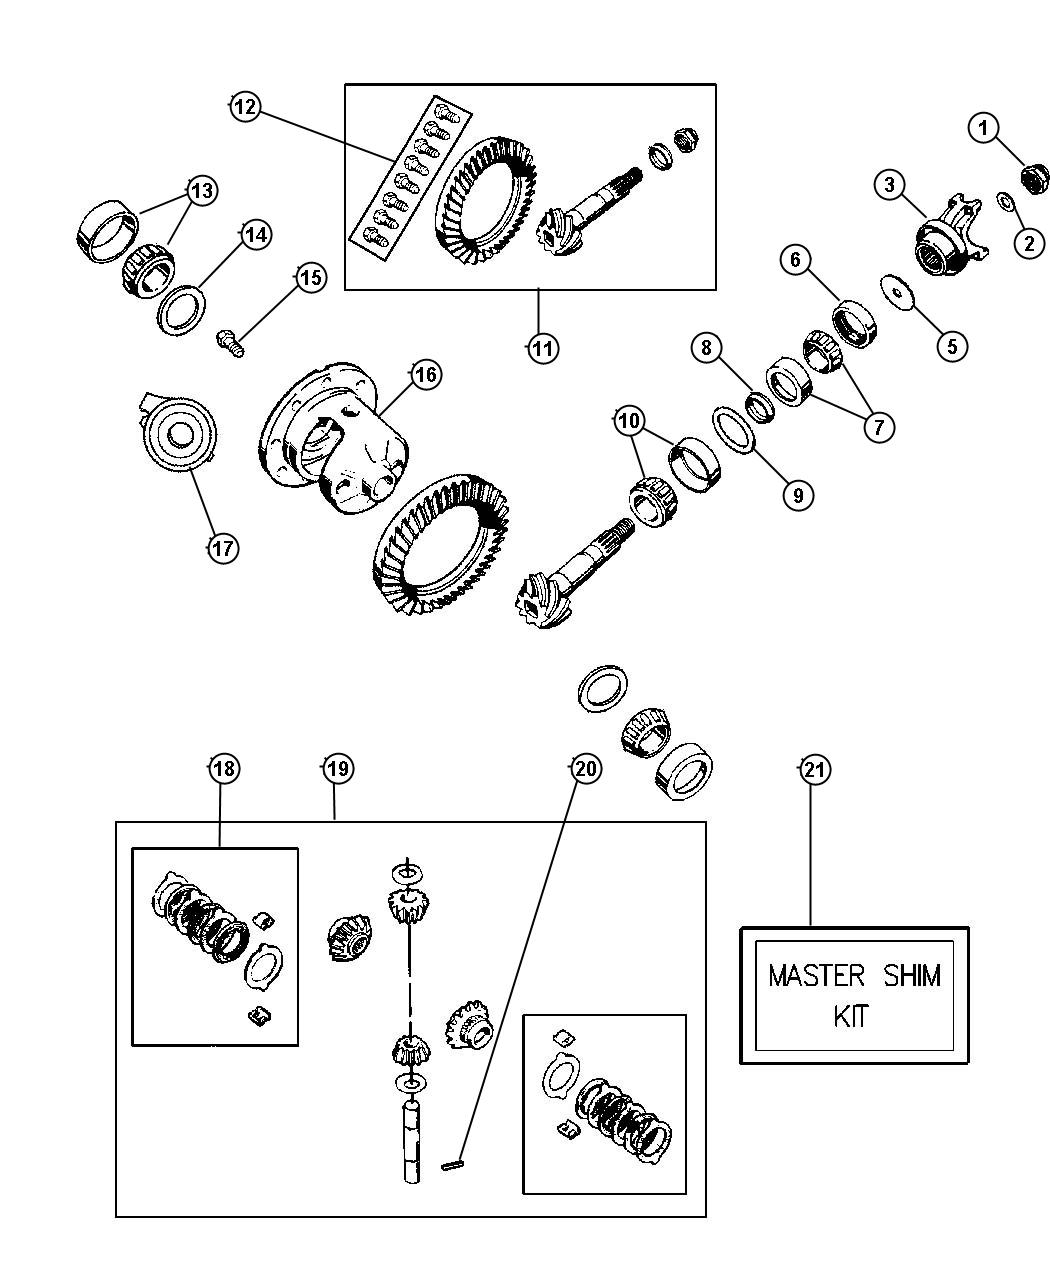 rear dana jeep 35 axle diagram html